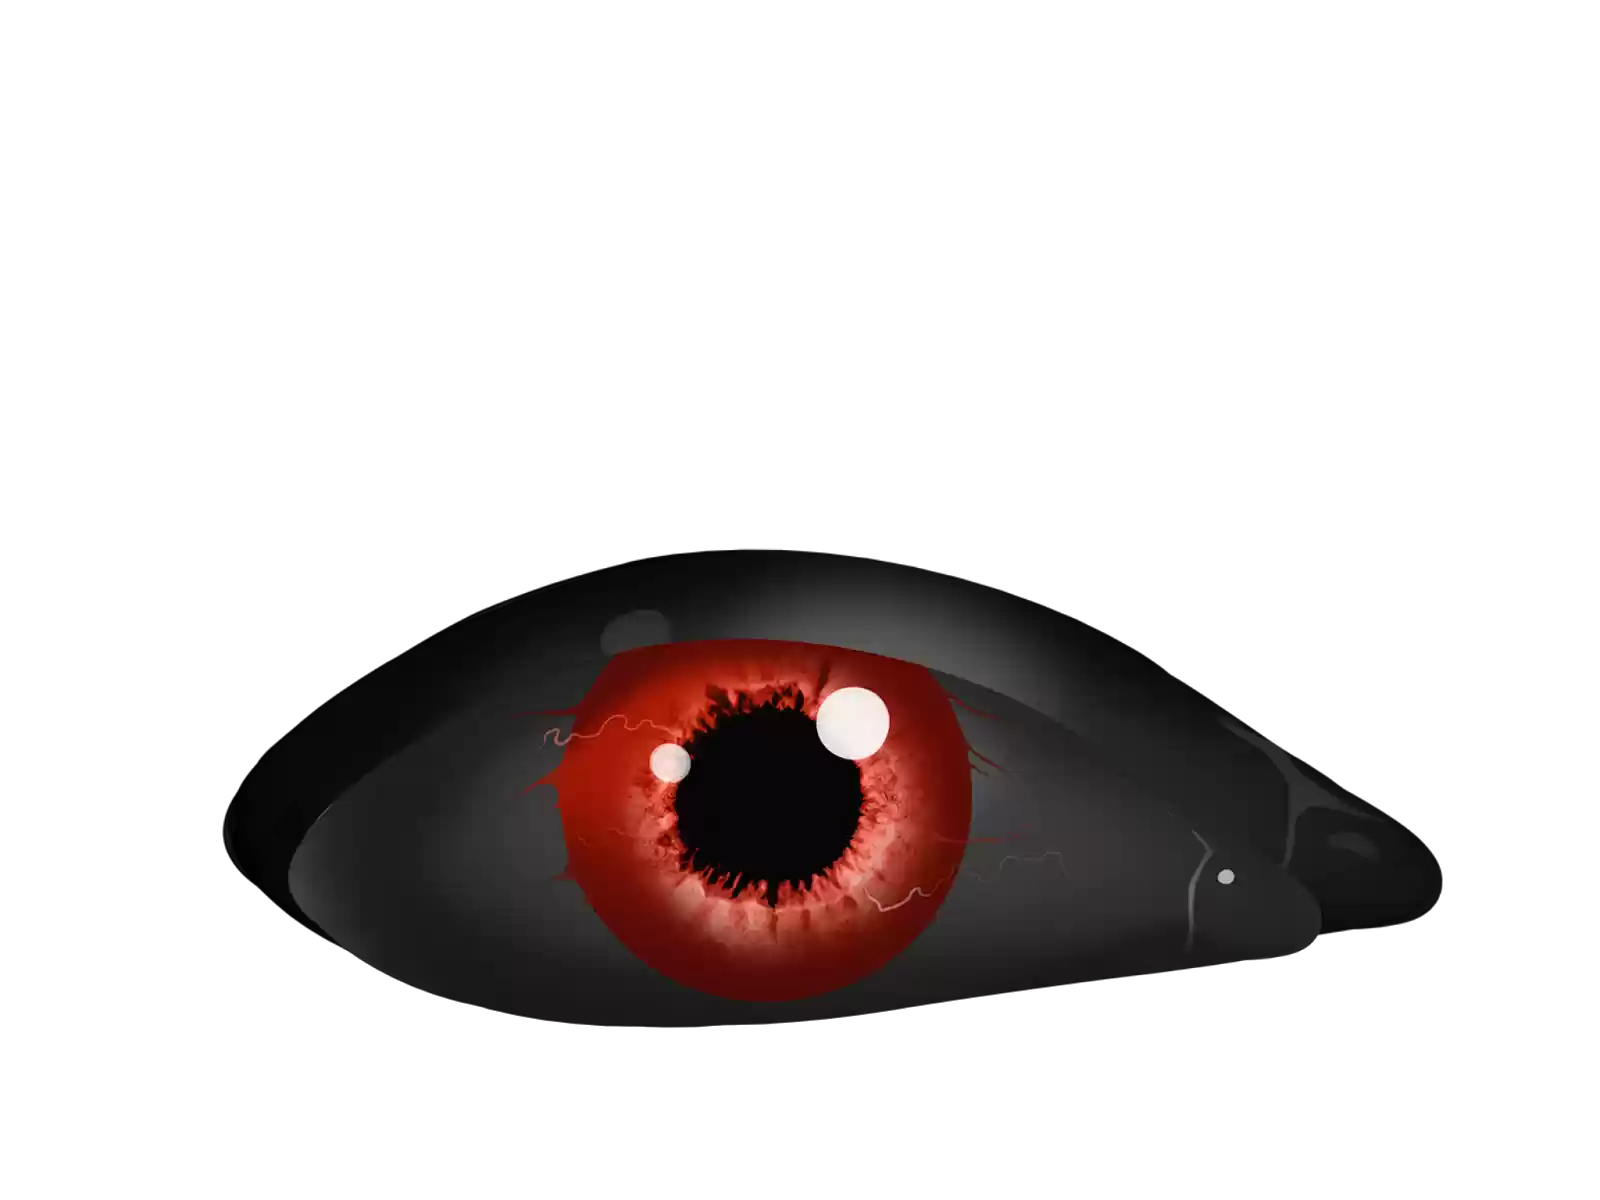 Scary eyes png. Editor azhar